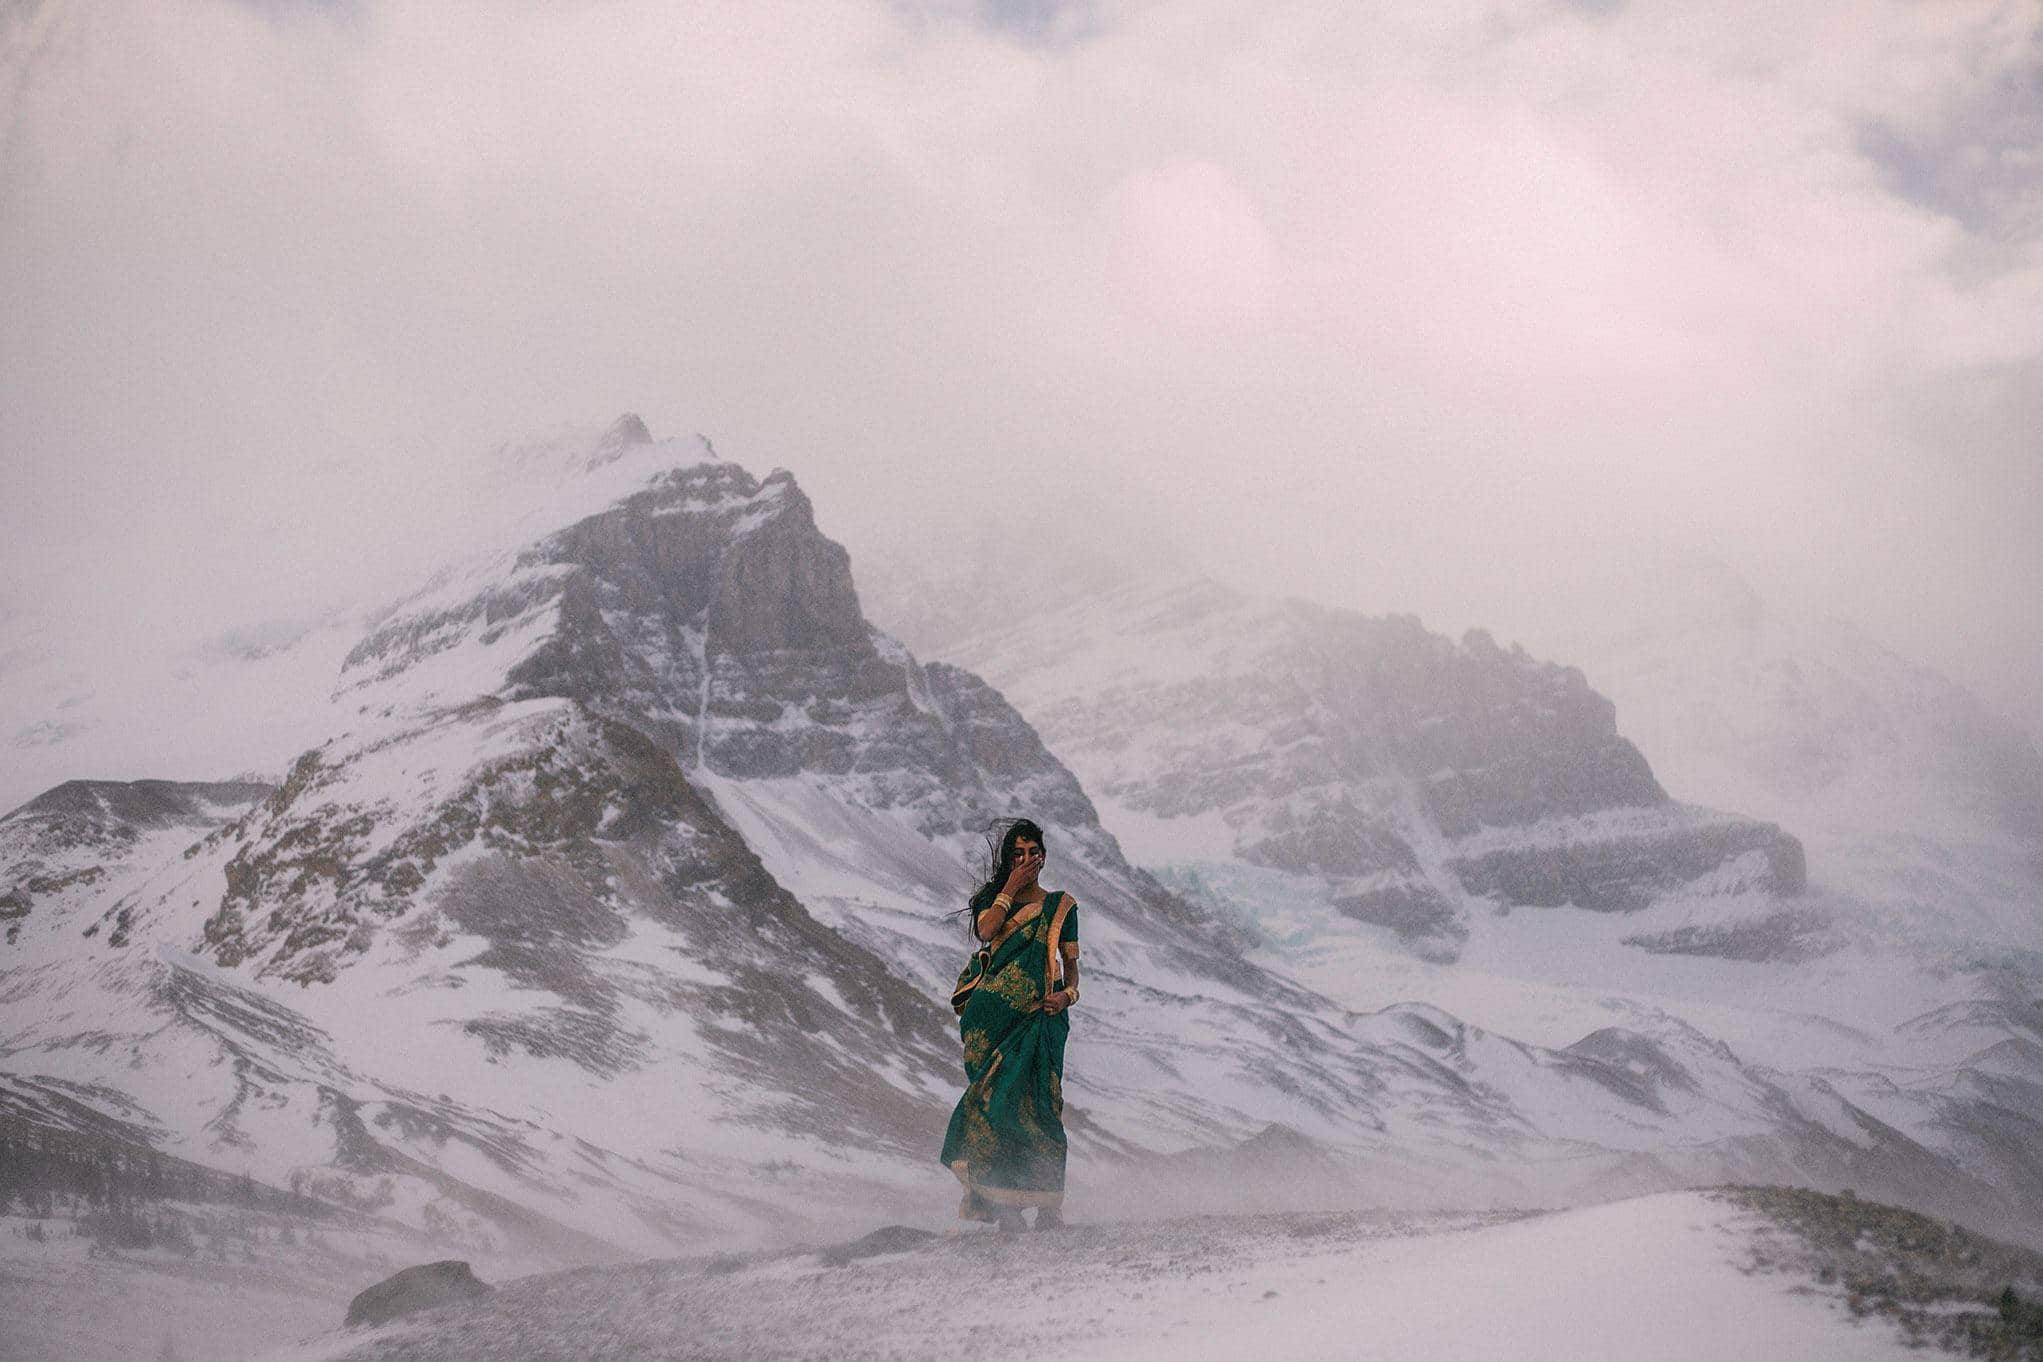 A bride in a sari stands in the middle of a snowstorm covering her mouth while laughing. Behind her are sweeping views of the mountains and a glacier in Banff National Park. This is what an adventurous elopement is made of.